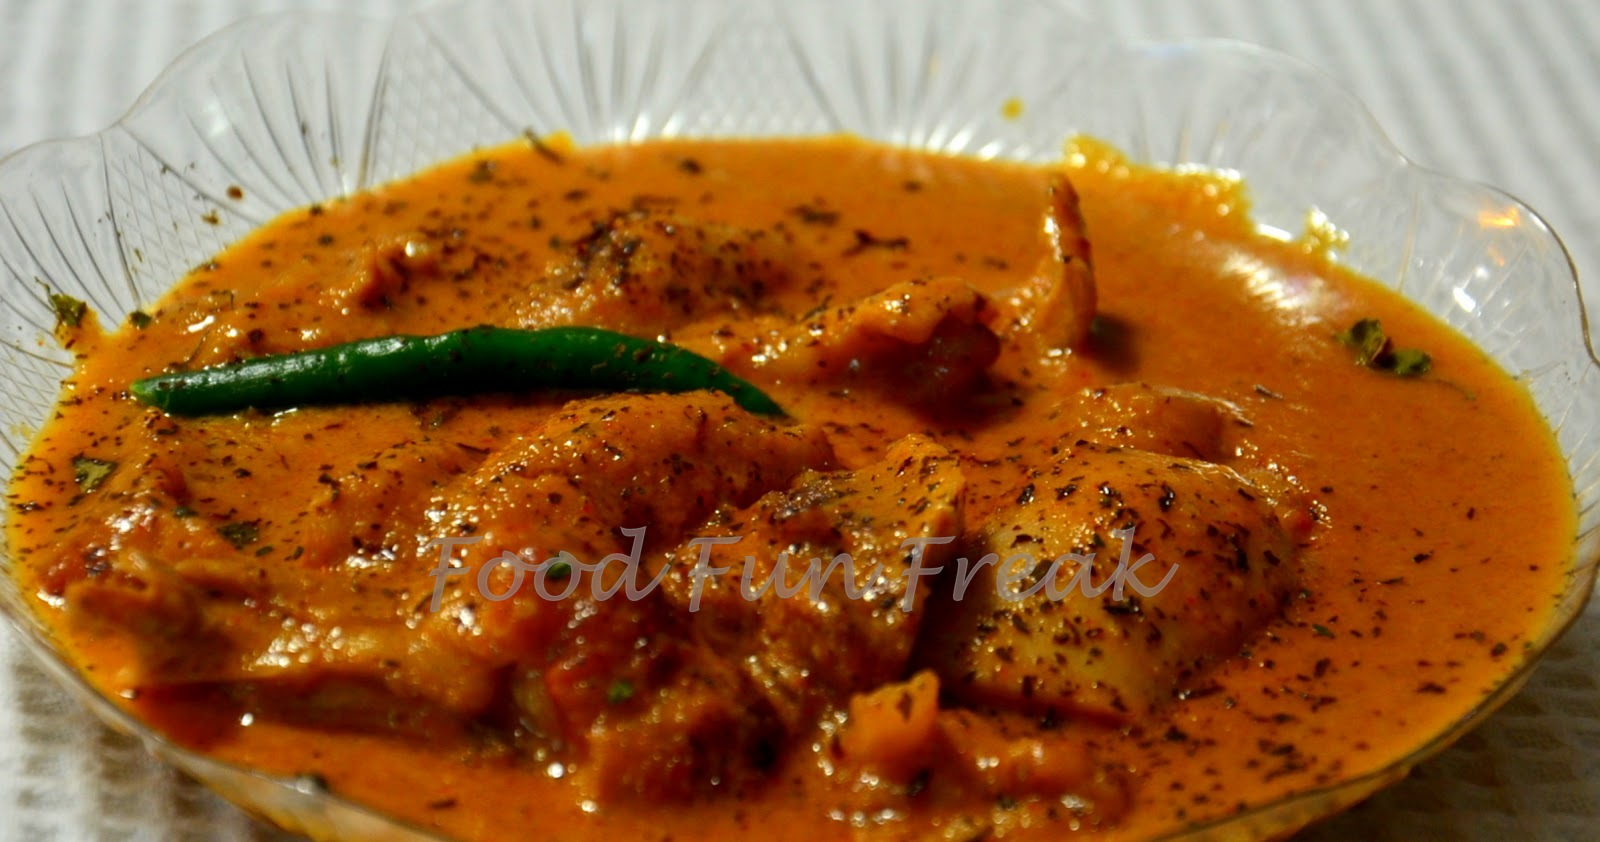 Best Butter Chicken Recipe ~ Food Fun Freak